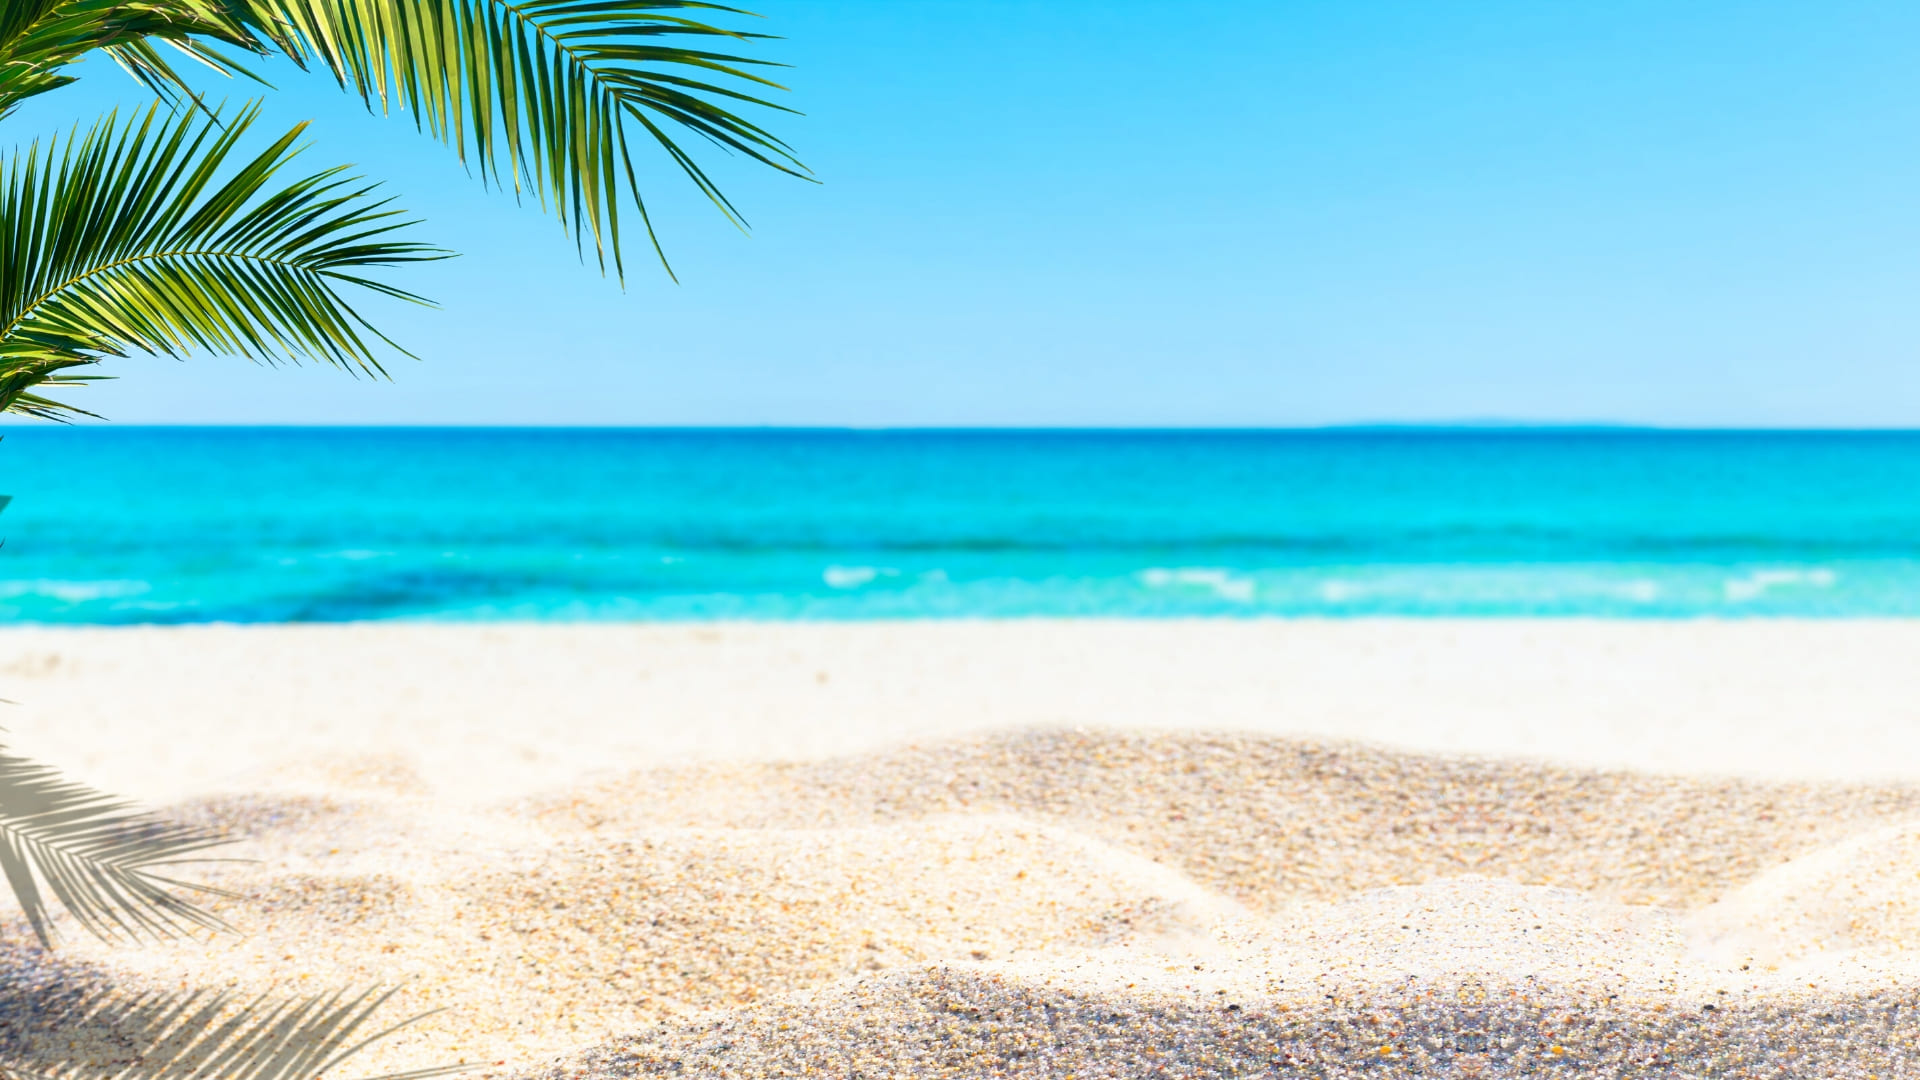 Beach background wallpapers